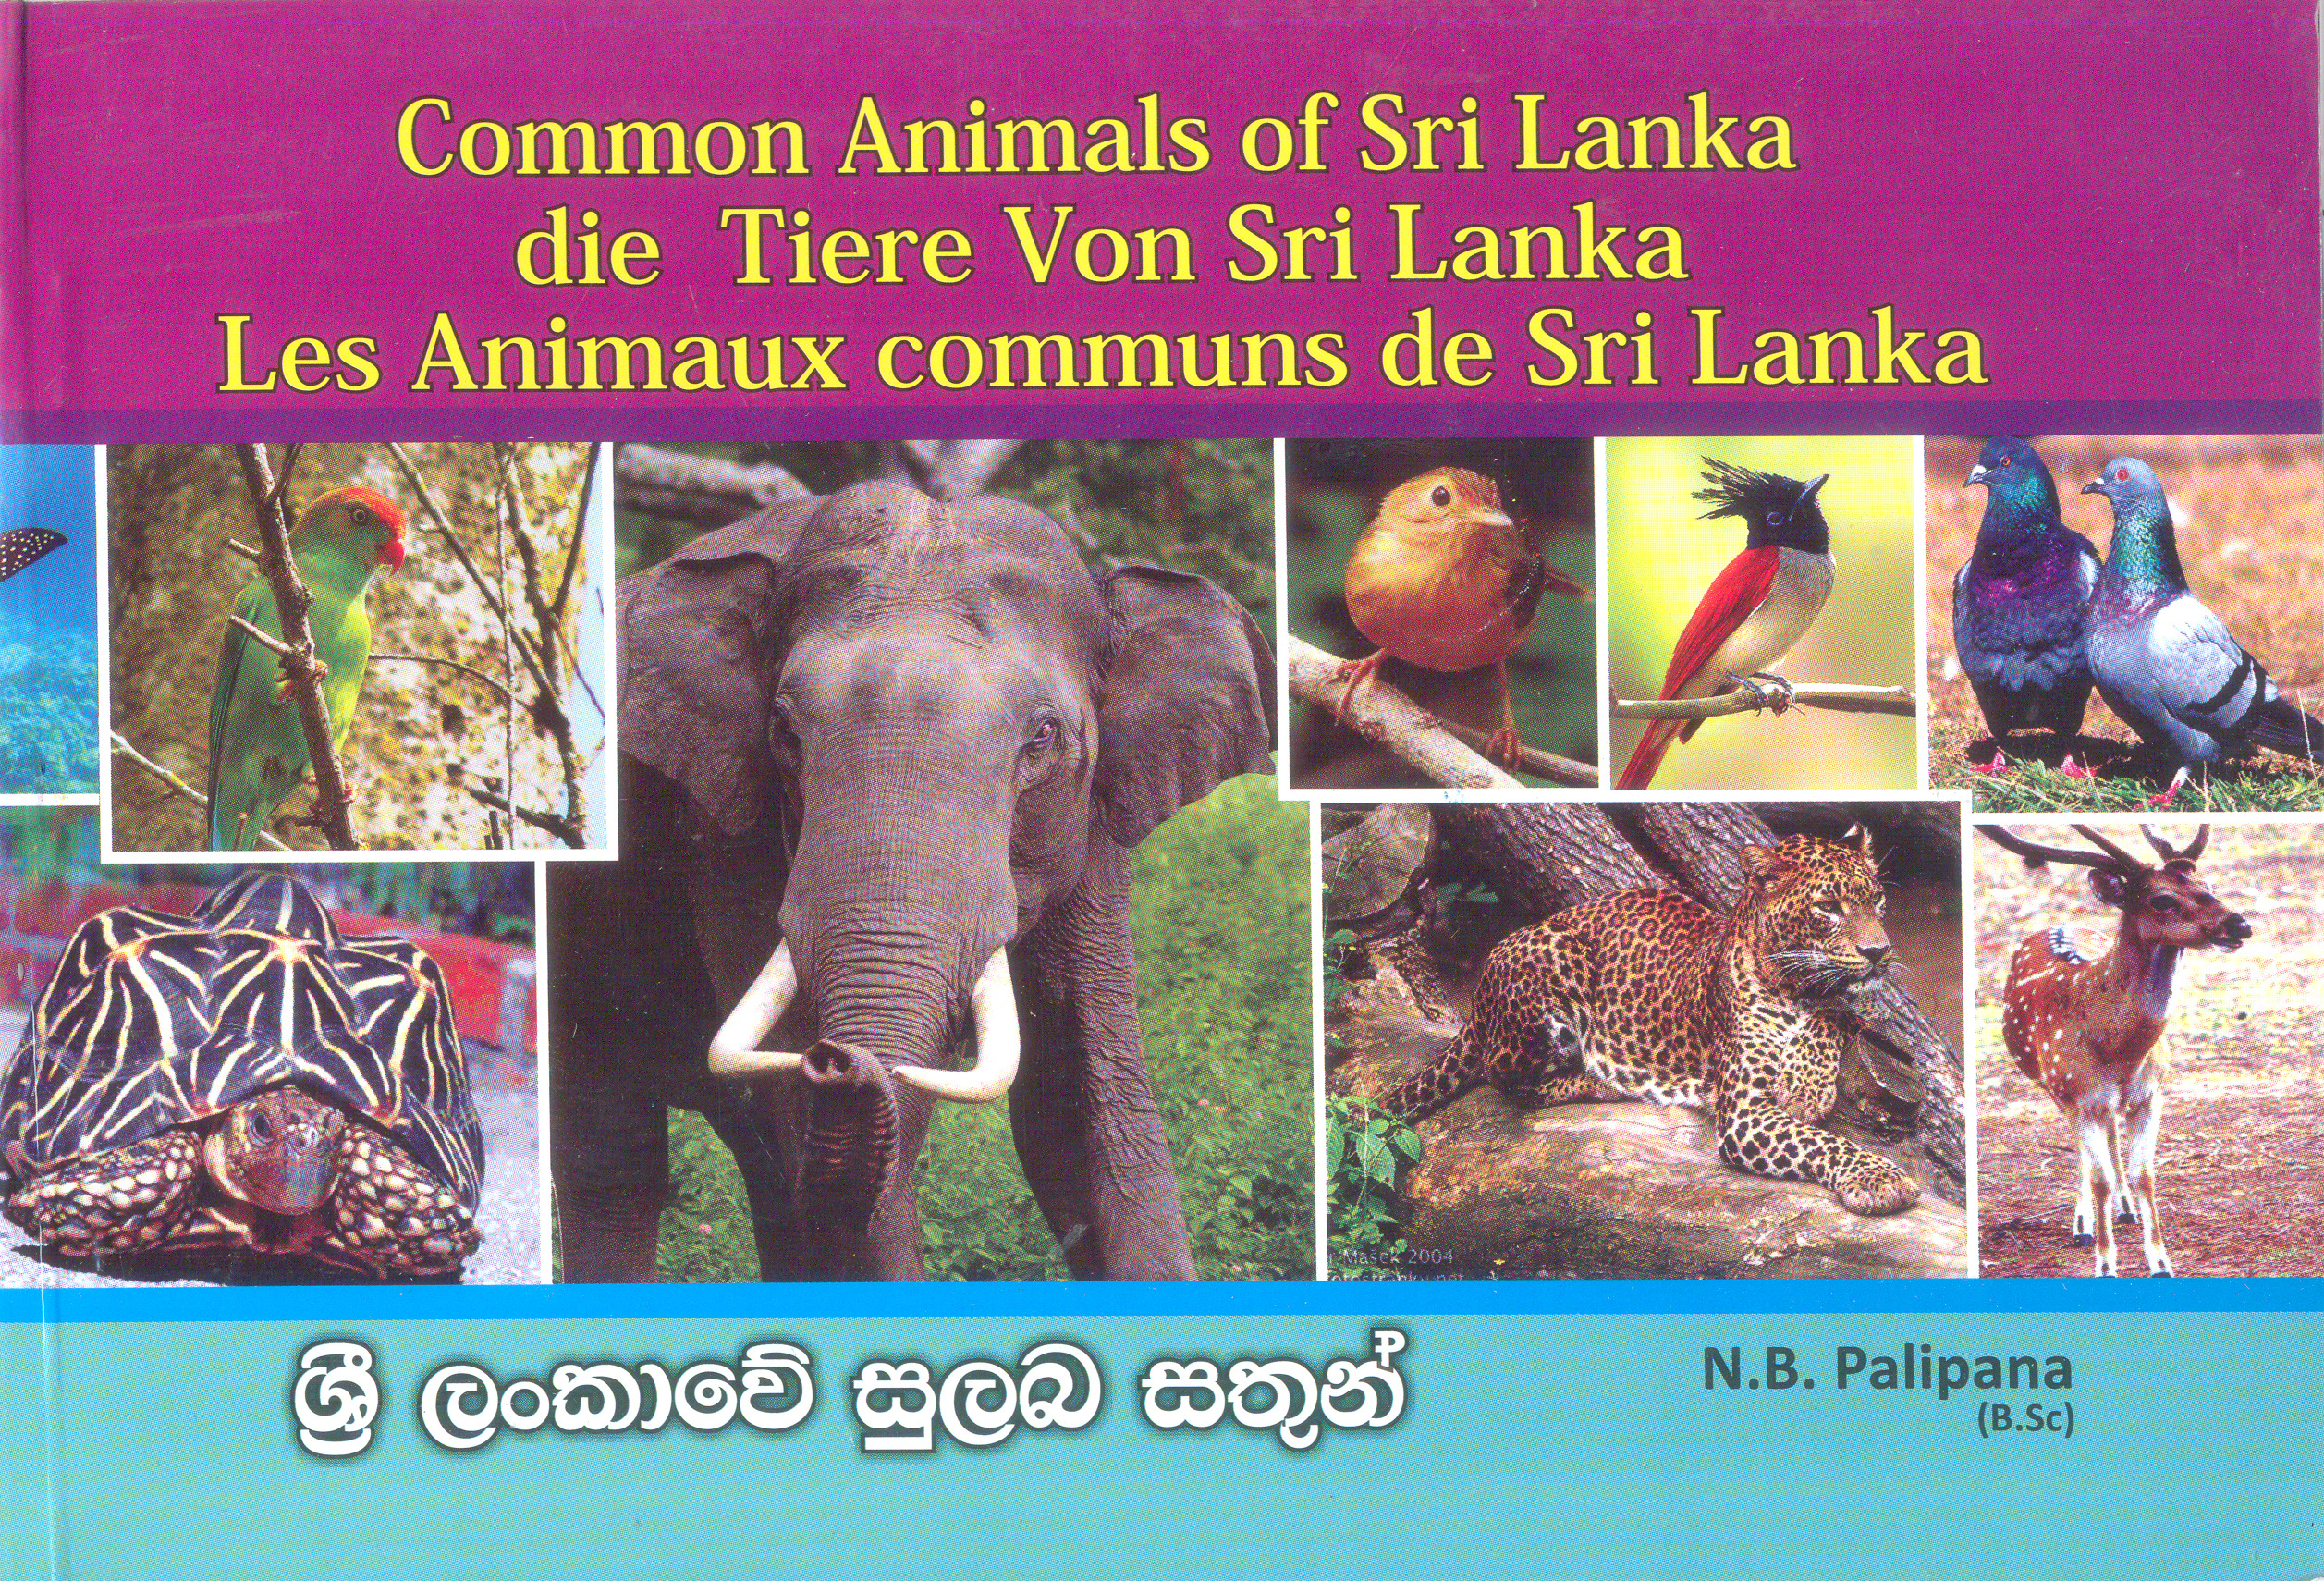 Common Animals Of Sri Lanka Dic Gemeisame Tiere Von Sri Lanka Les Animaux Communs De Sri Lanka